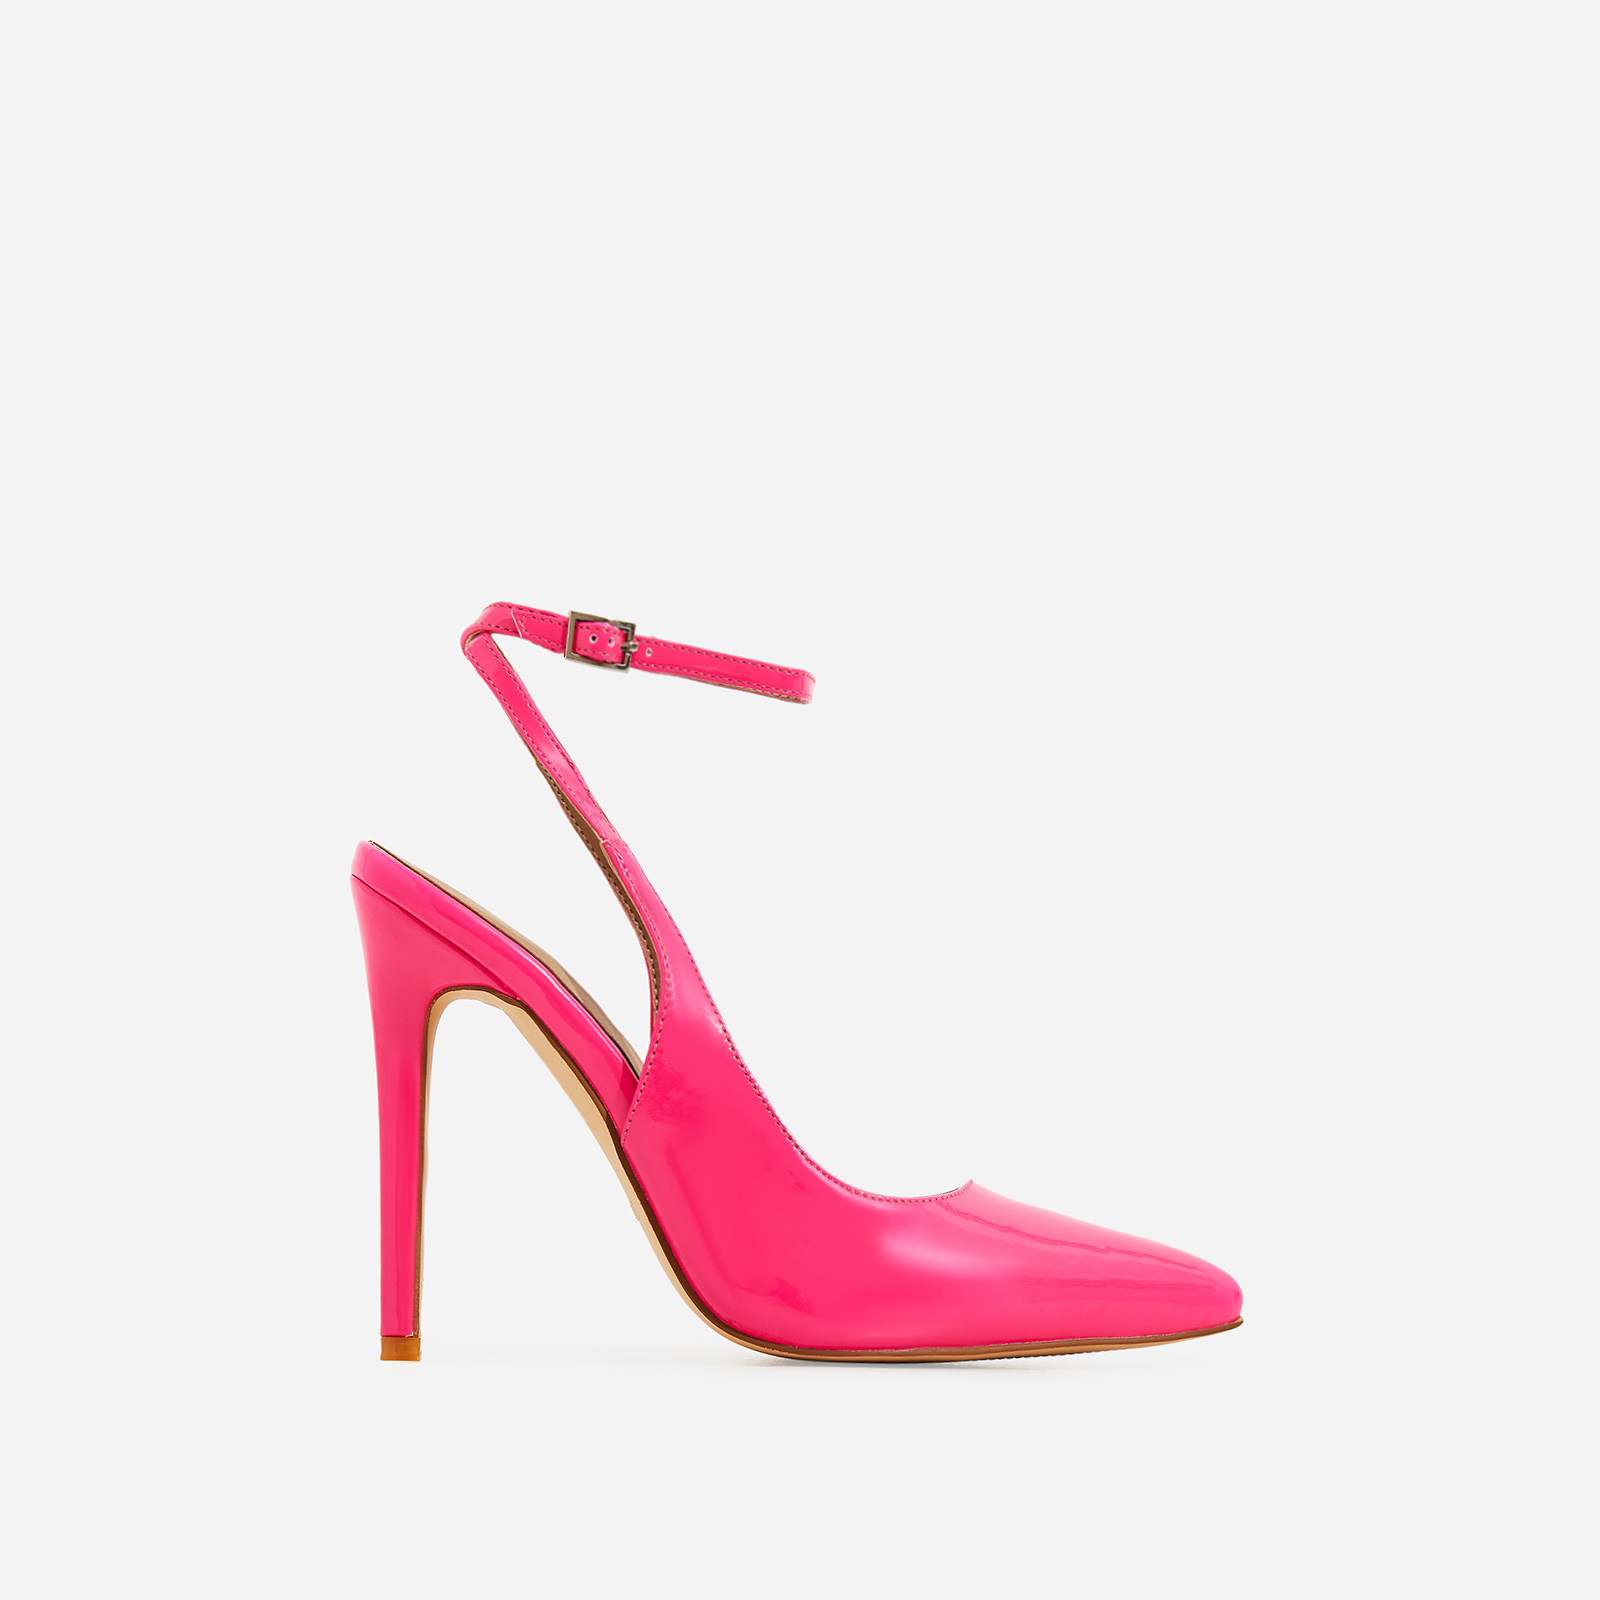 Raina Strappy Court Heel In Neon Pink Patent